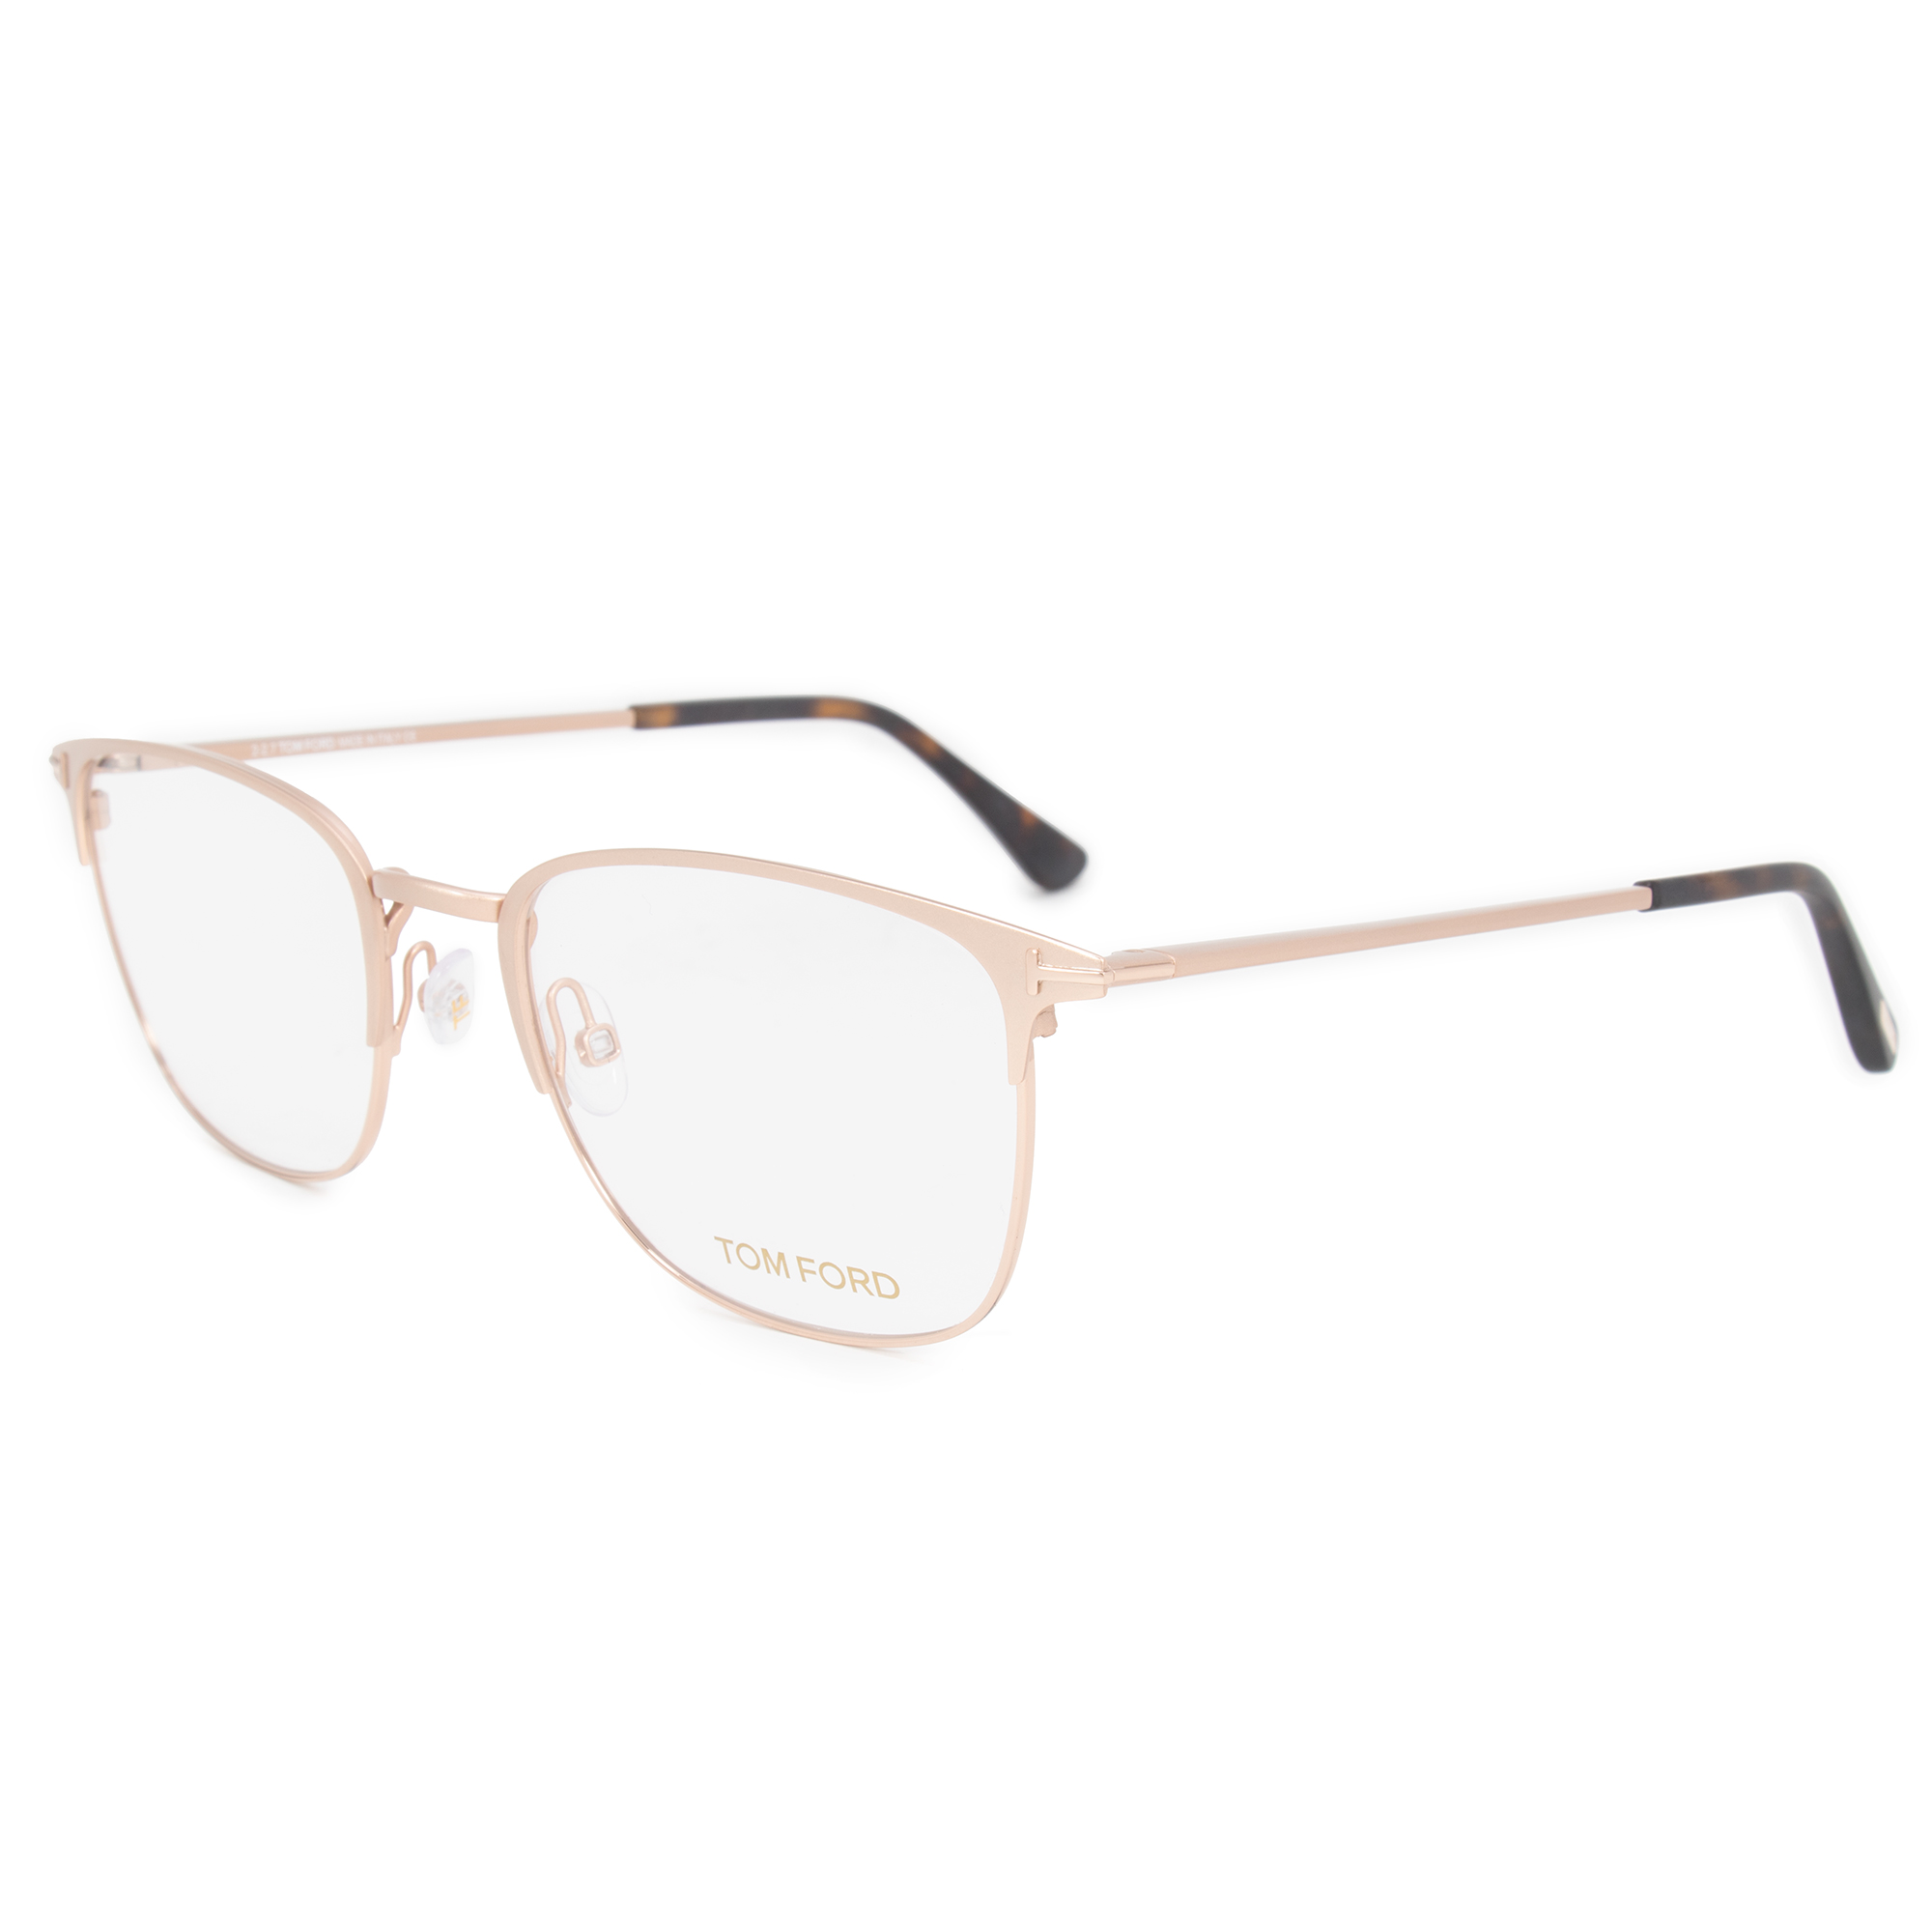 630b357974c Tom Ford FT5453 Semi-rimless Man Eyeglasses - Walmart.com